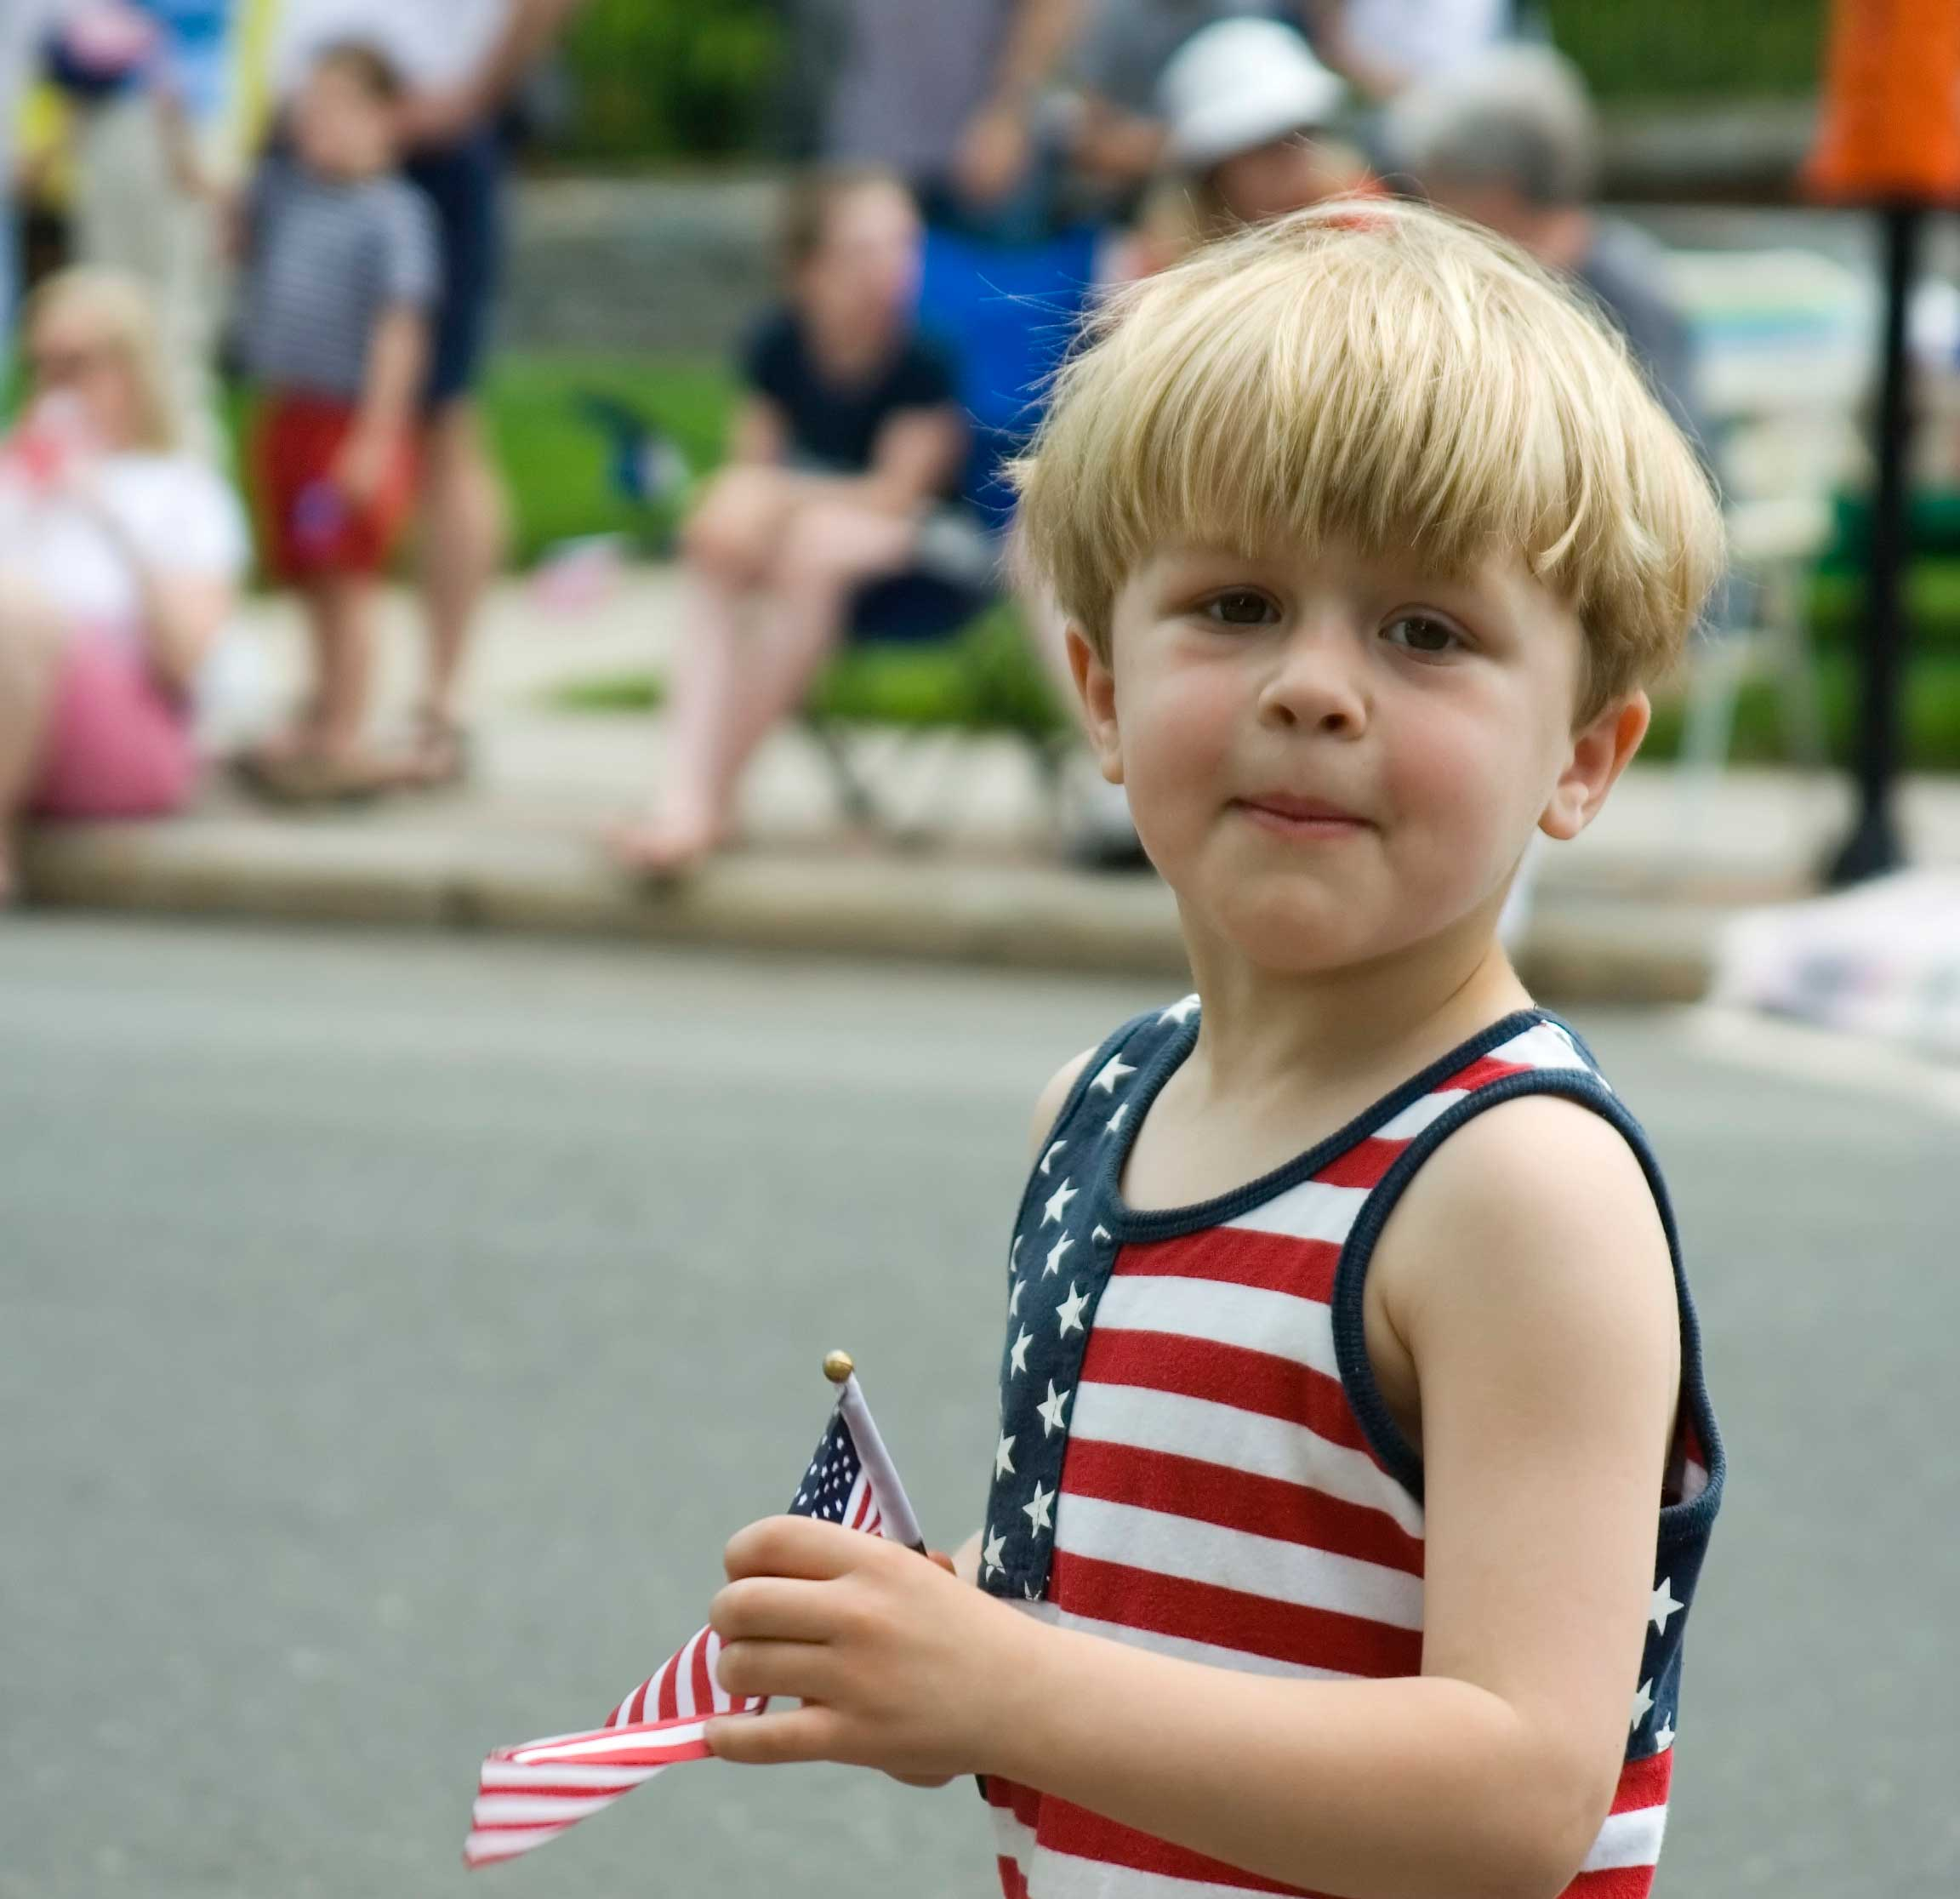 A patriotic parade watcher is temporarily distracted from harvesting parade candy.